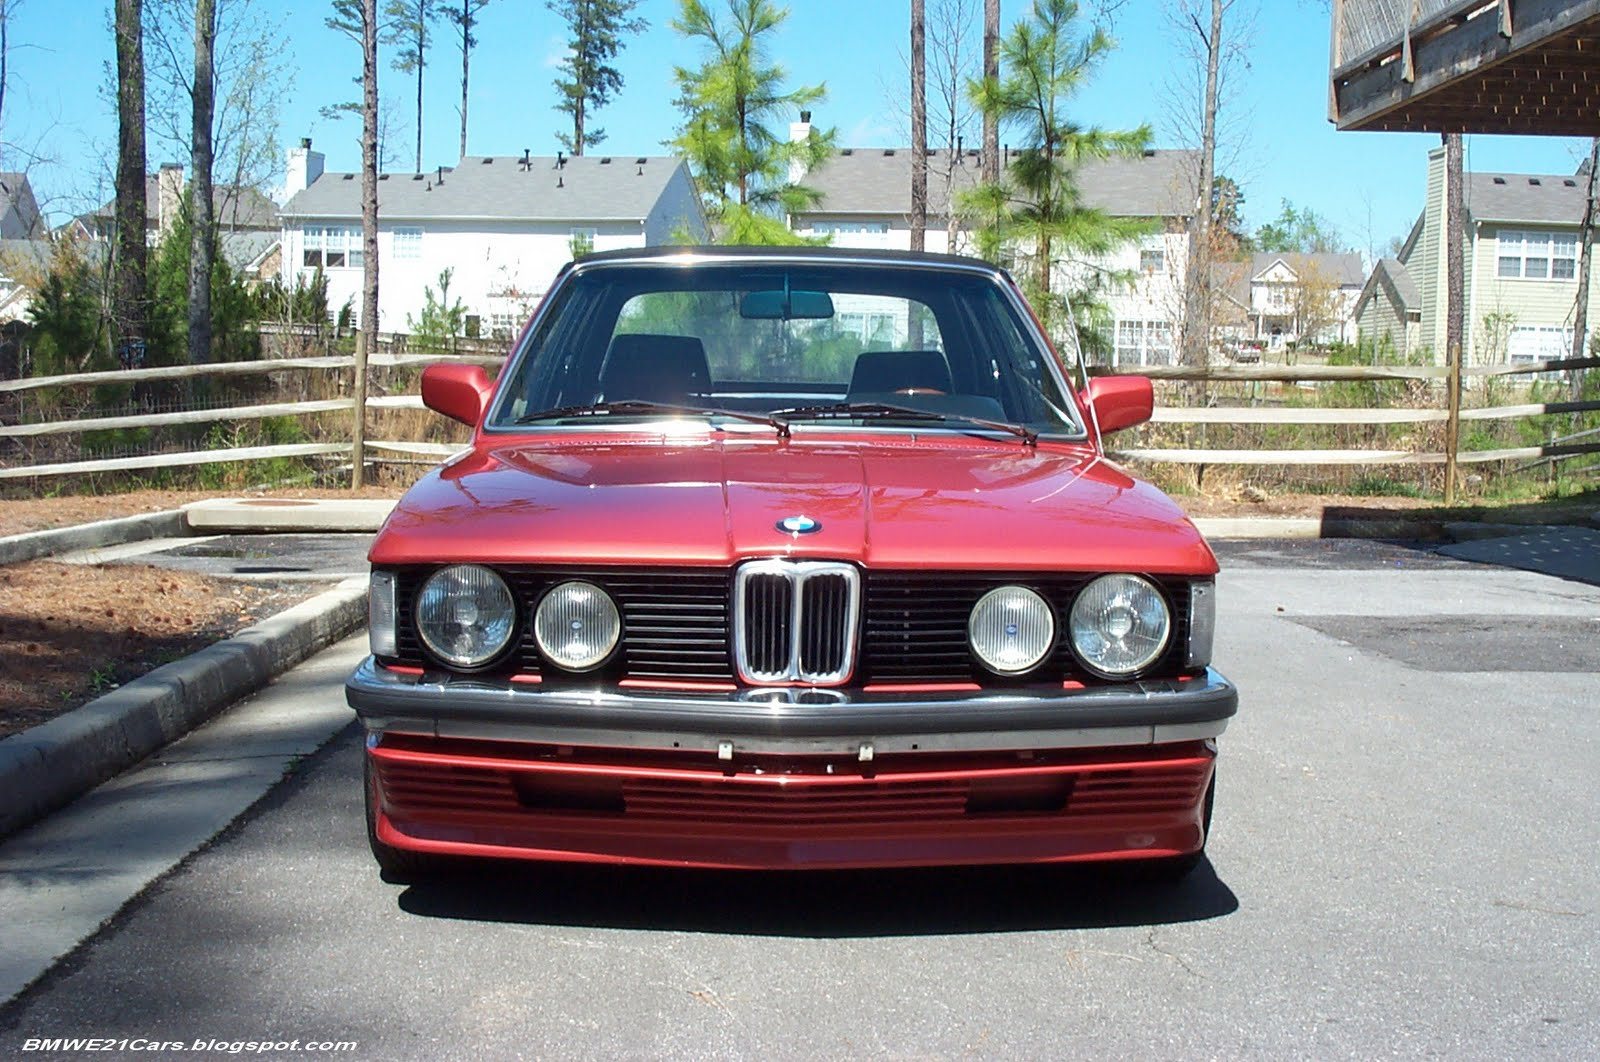 BMW E21 with 2.8L engine and